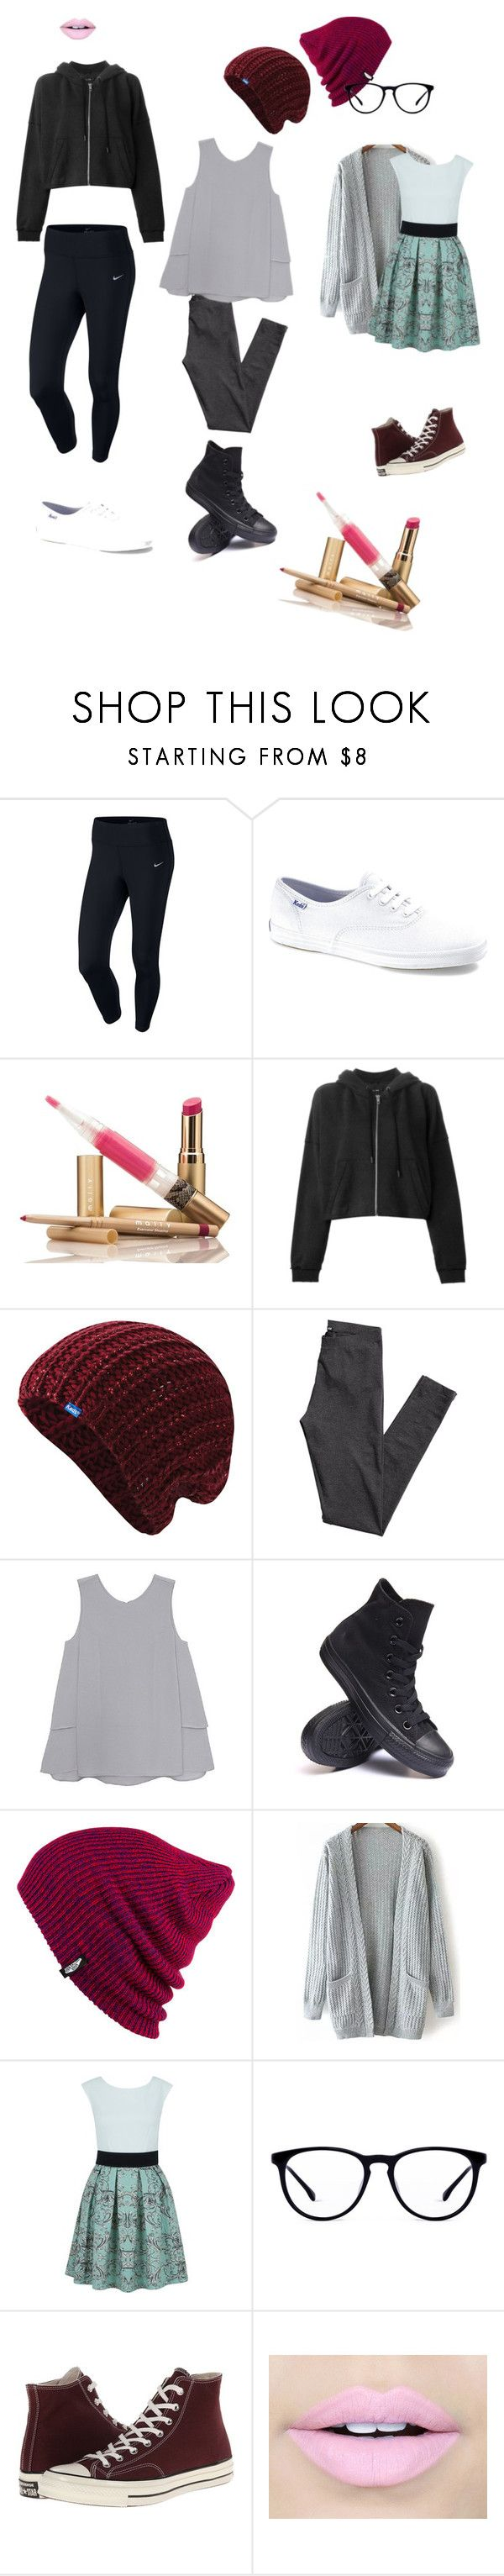 """Tomboy outfits"" by fashion-lover63 ❤ liked on Polyvore featuring NIKE, Keds, rag & bone, H&M, Olive + Oak, Converse, Vans, Closet and Fiebiger"